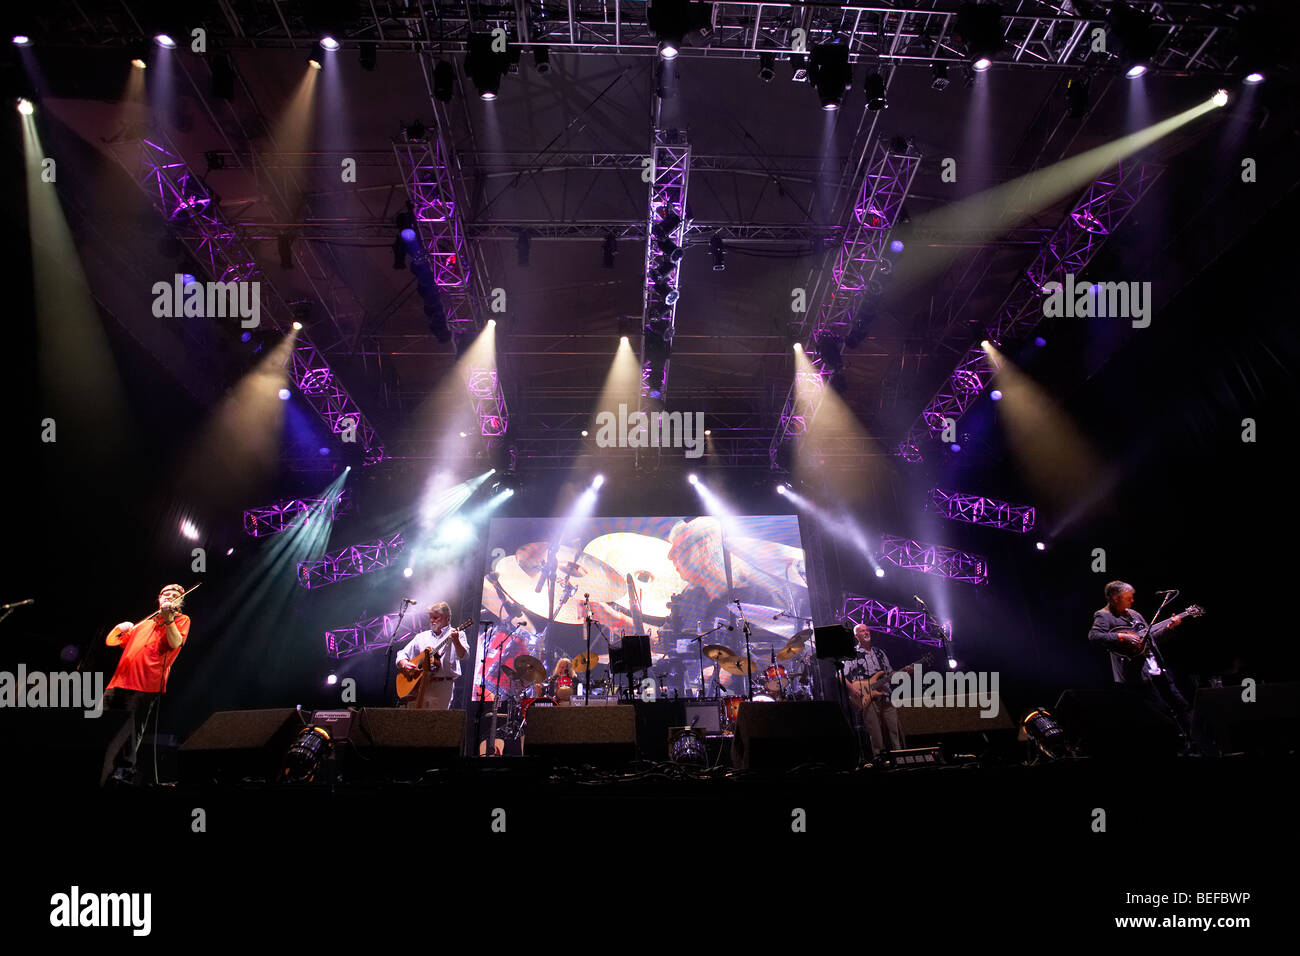 Fairport Convention live at the Cropredy Festival 2009 - Stock Image